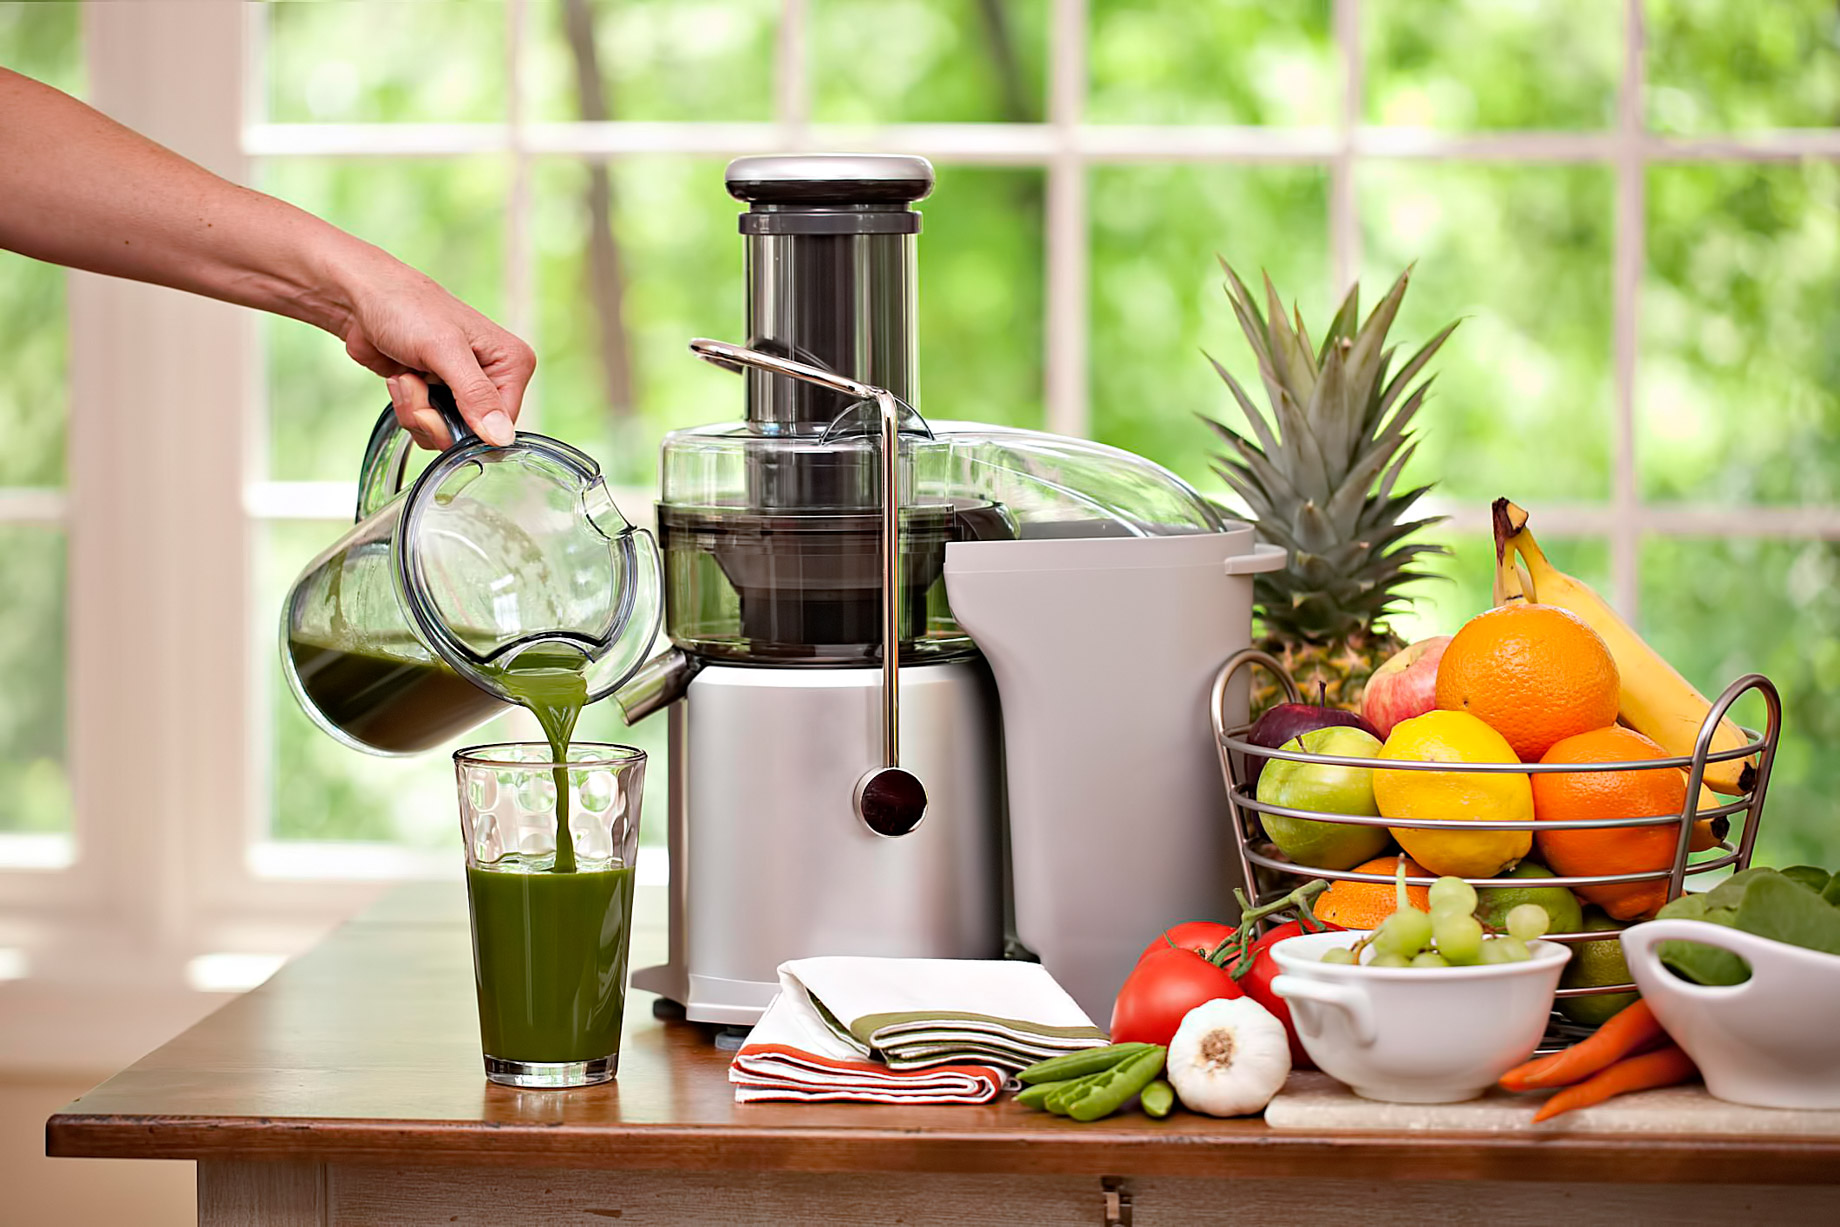 Juicer - New Home Trends - Ideal Luxury Products For Your House This Winter